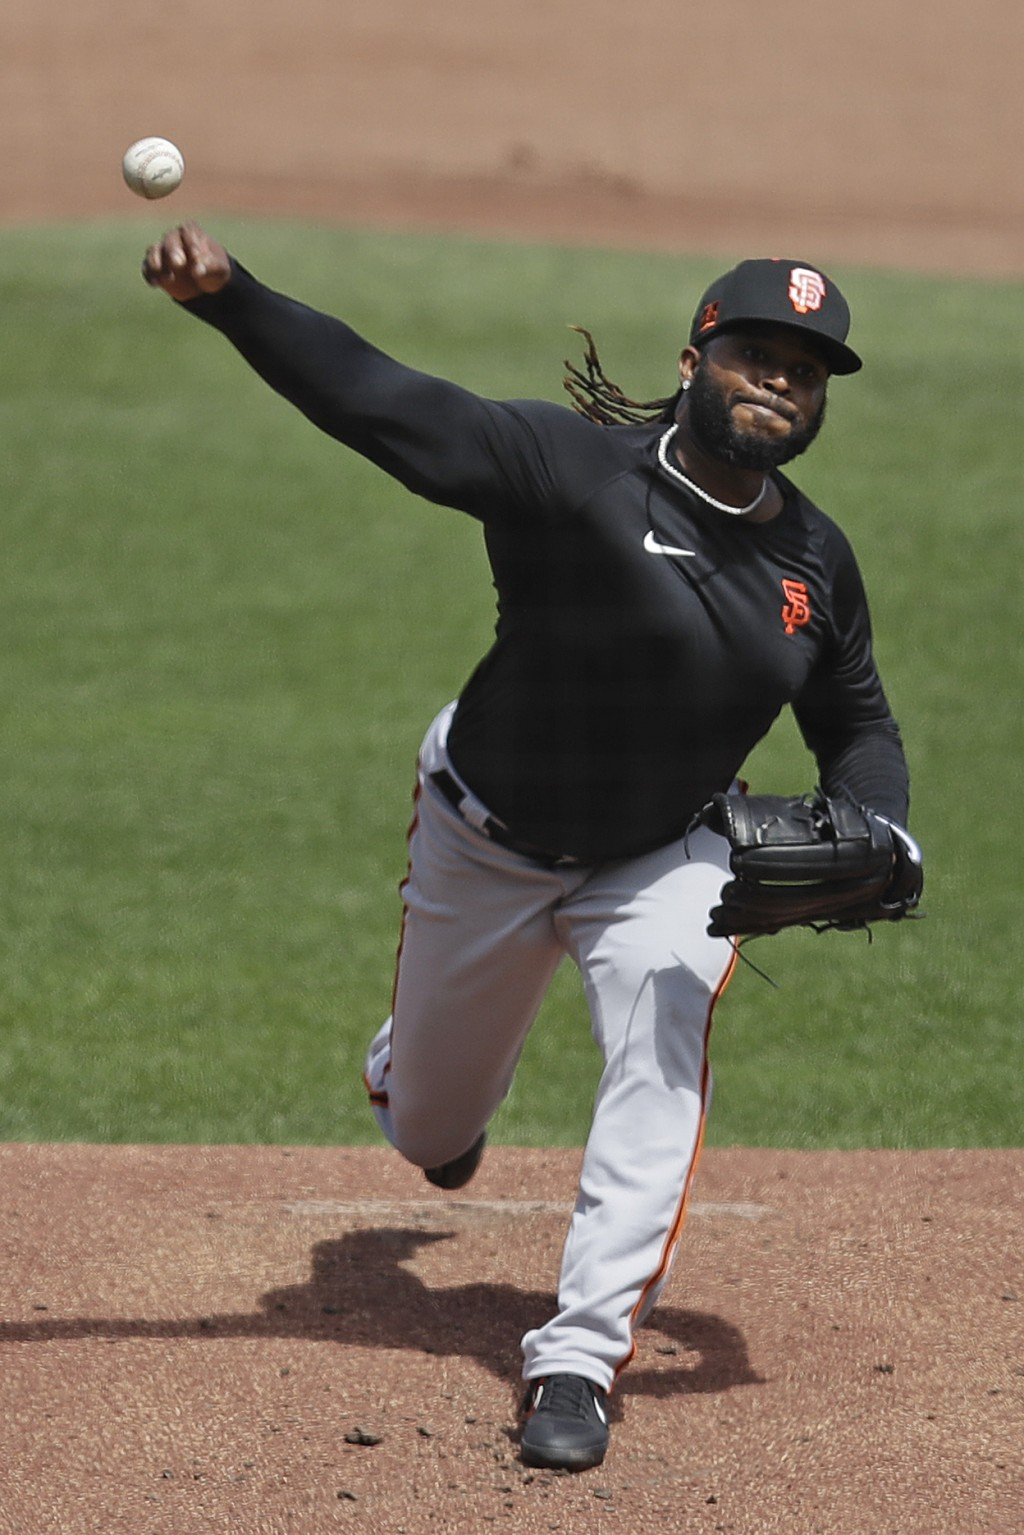 San Francisco Giants' Johnny Cueto pitches during a baseball practice on Friday, July 10, 2020, in San Francisco. (AP Photo/Ben Margot)